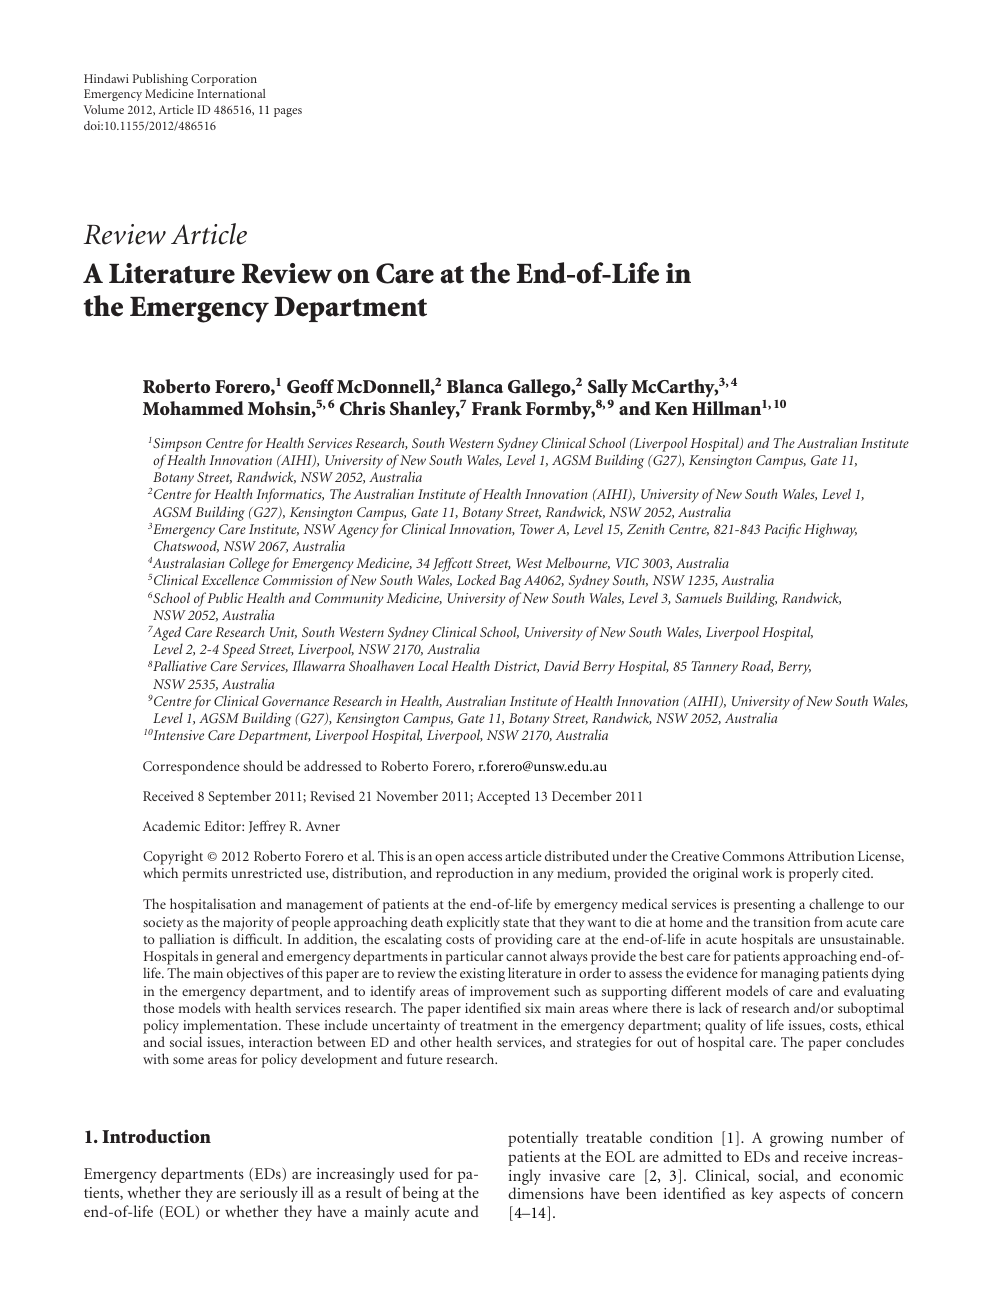 A Literature Review on Care at the End-of-Life in the Emergency